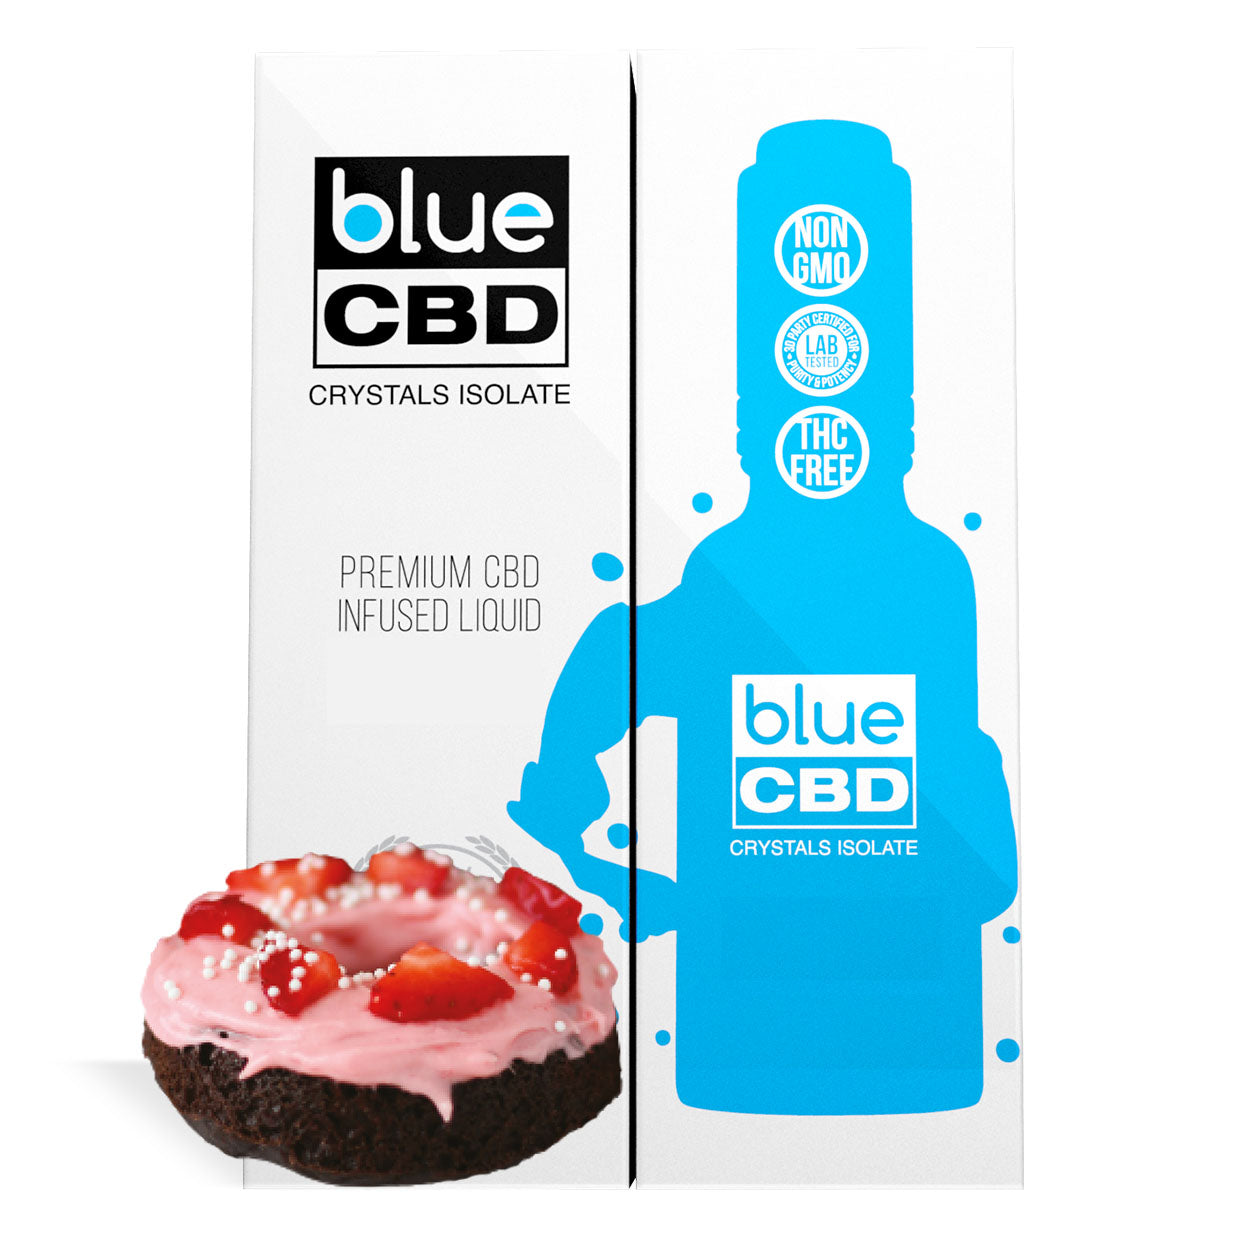 Strawberry Frosted Donut Flavor Blue CBD Crystal Isolate - My CBD Mall